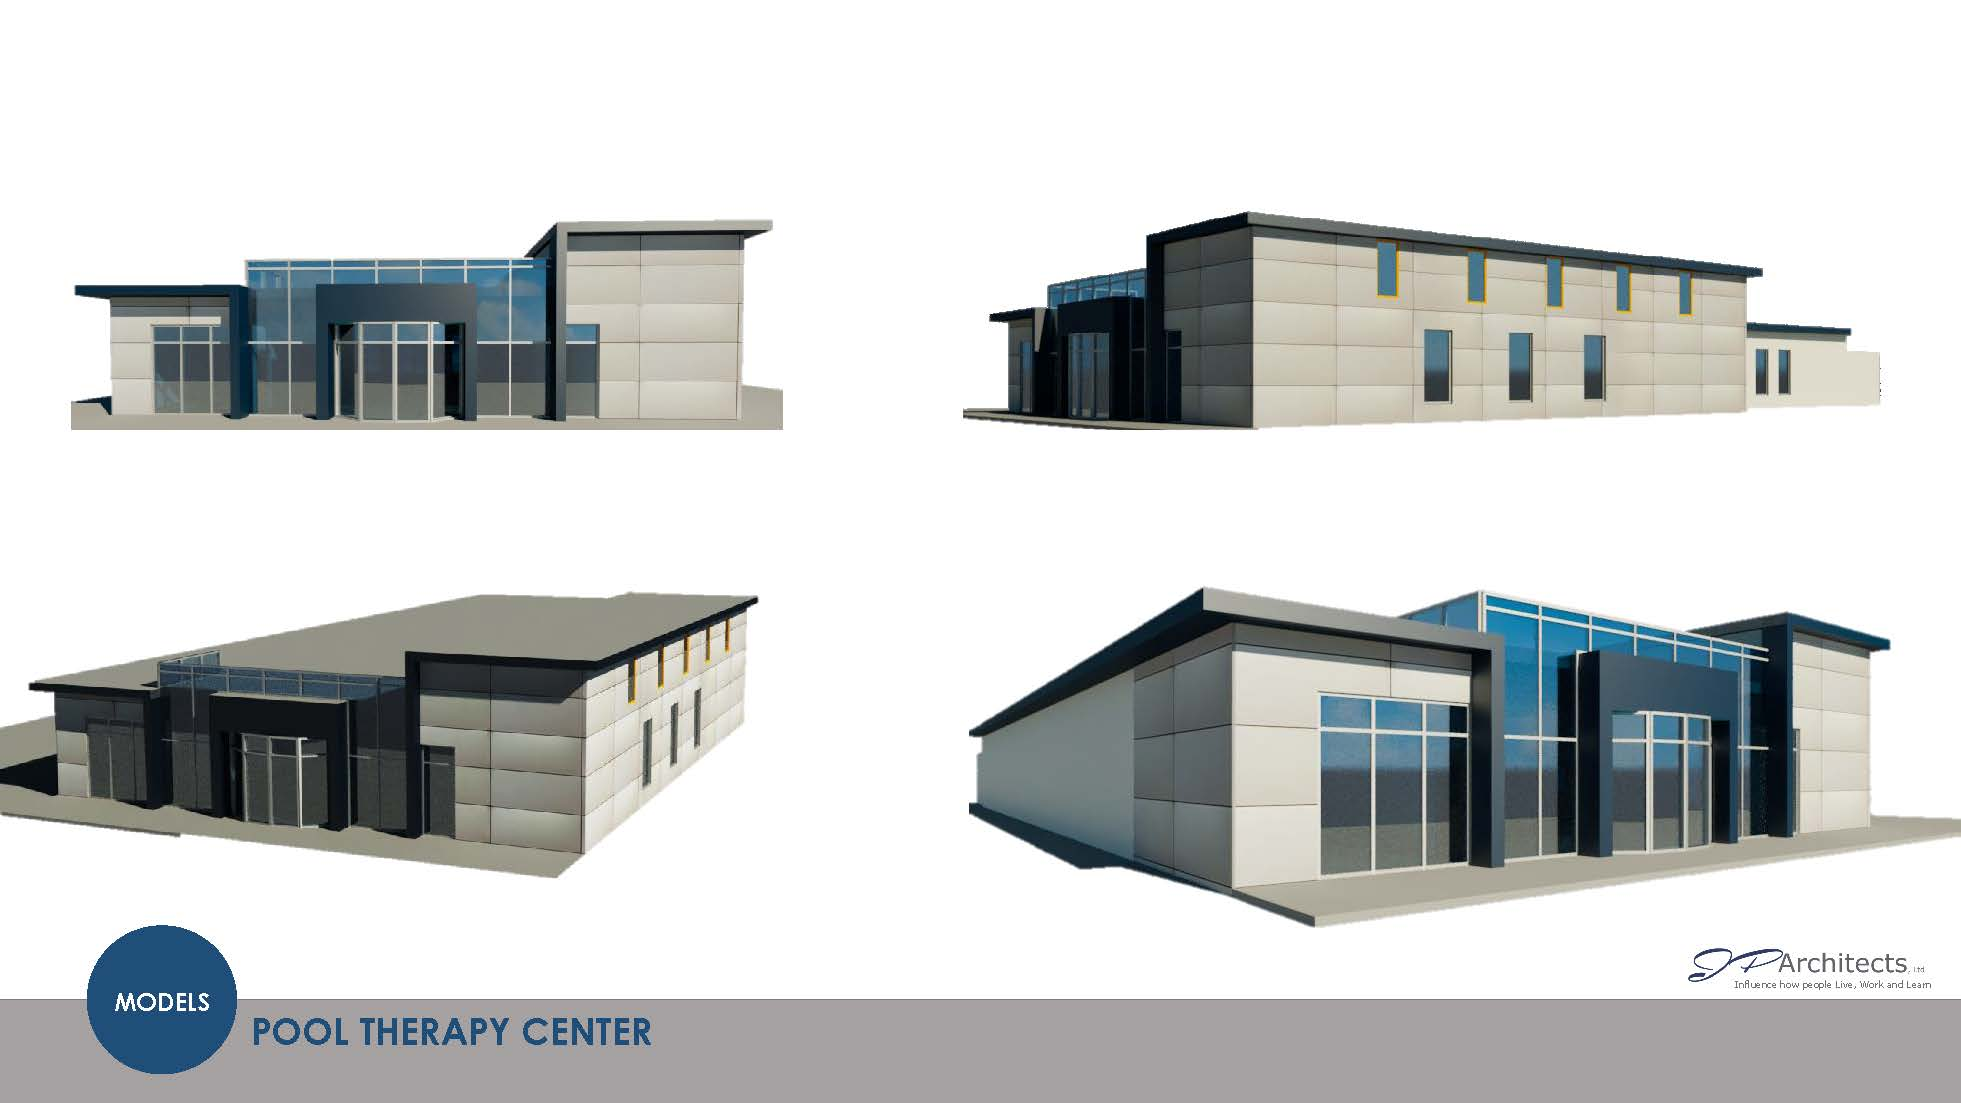 Second Design for Pool Therapy Center